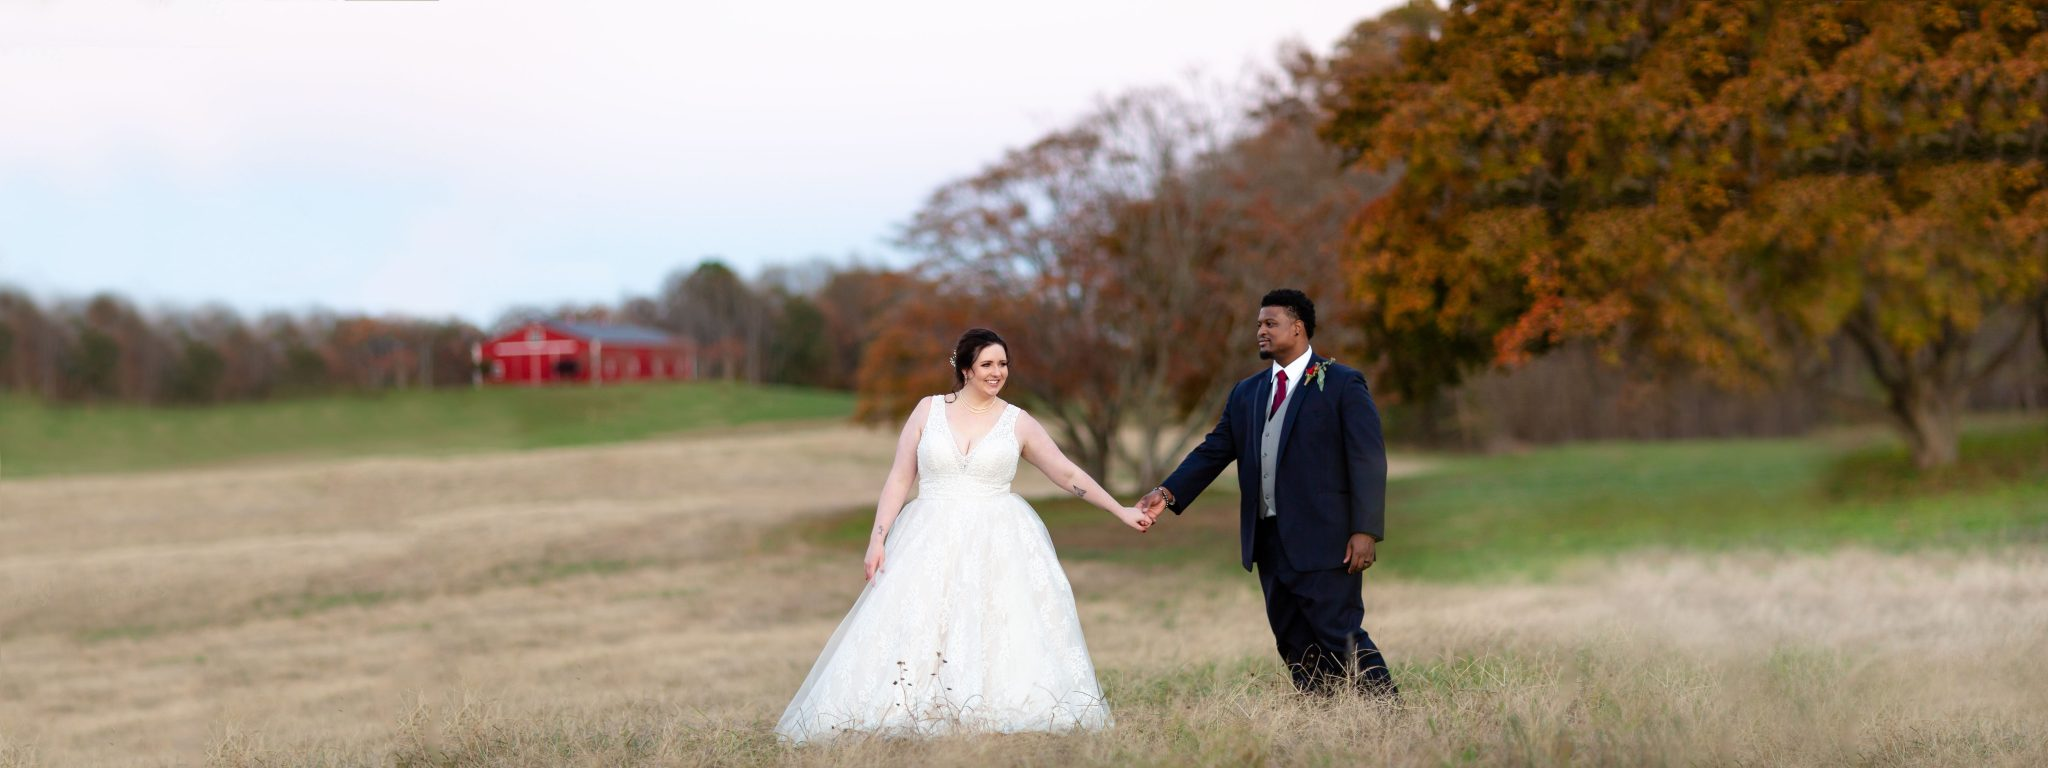 Wedding and Family Photography Fredericksburg VA Richmond VA DMV area Washington DC - MainFocus